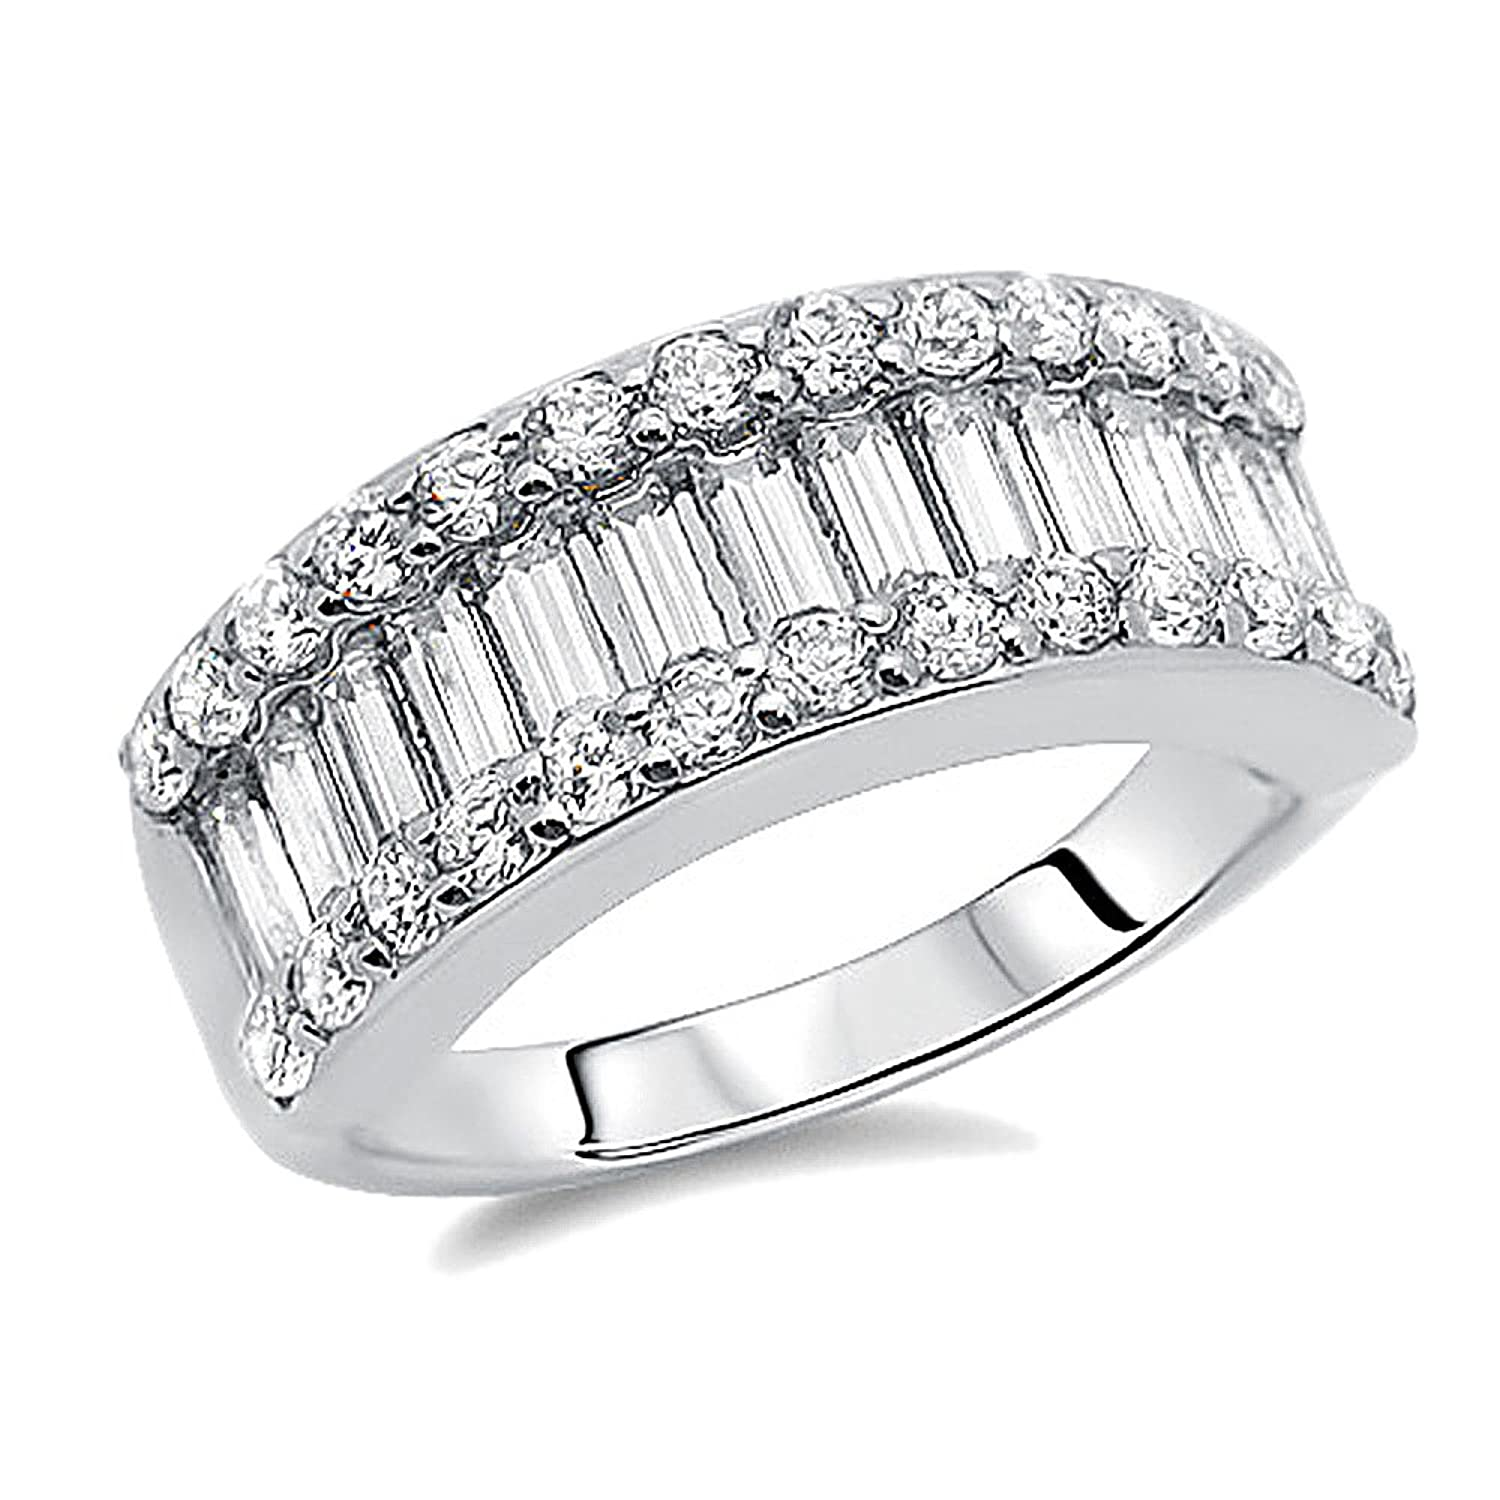 by henrich princess diamond band eternity wedding anniversary cut bands denzel baguette product